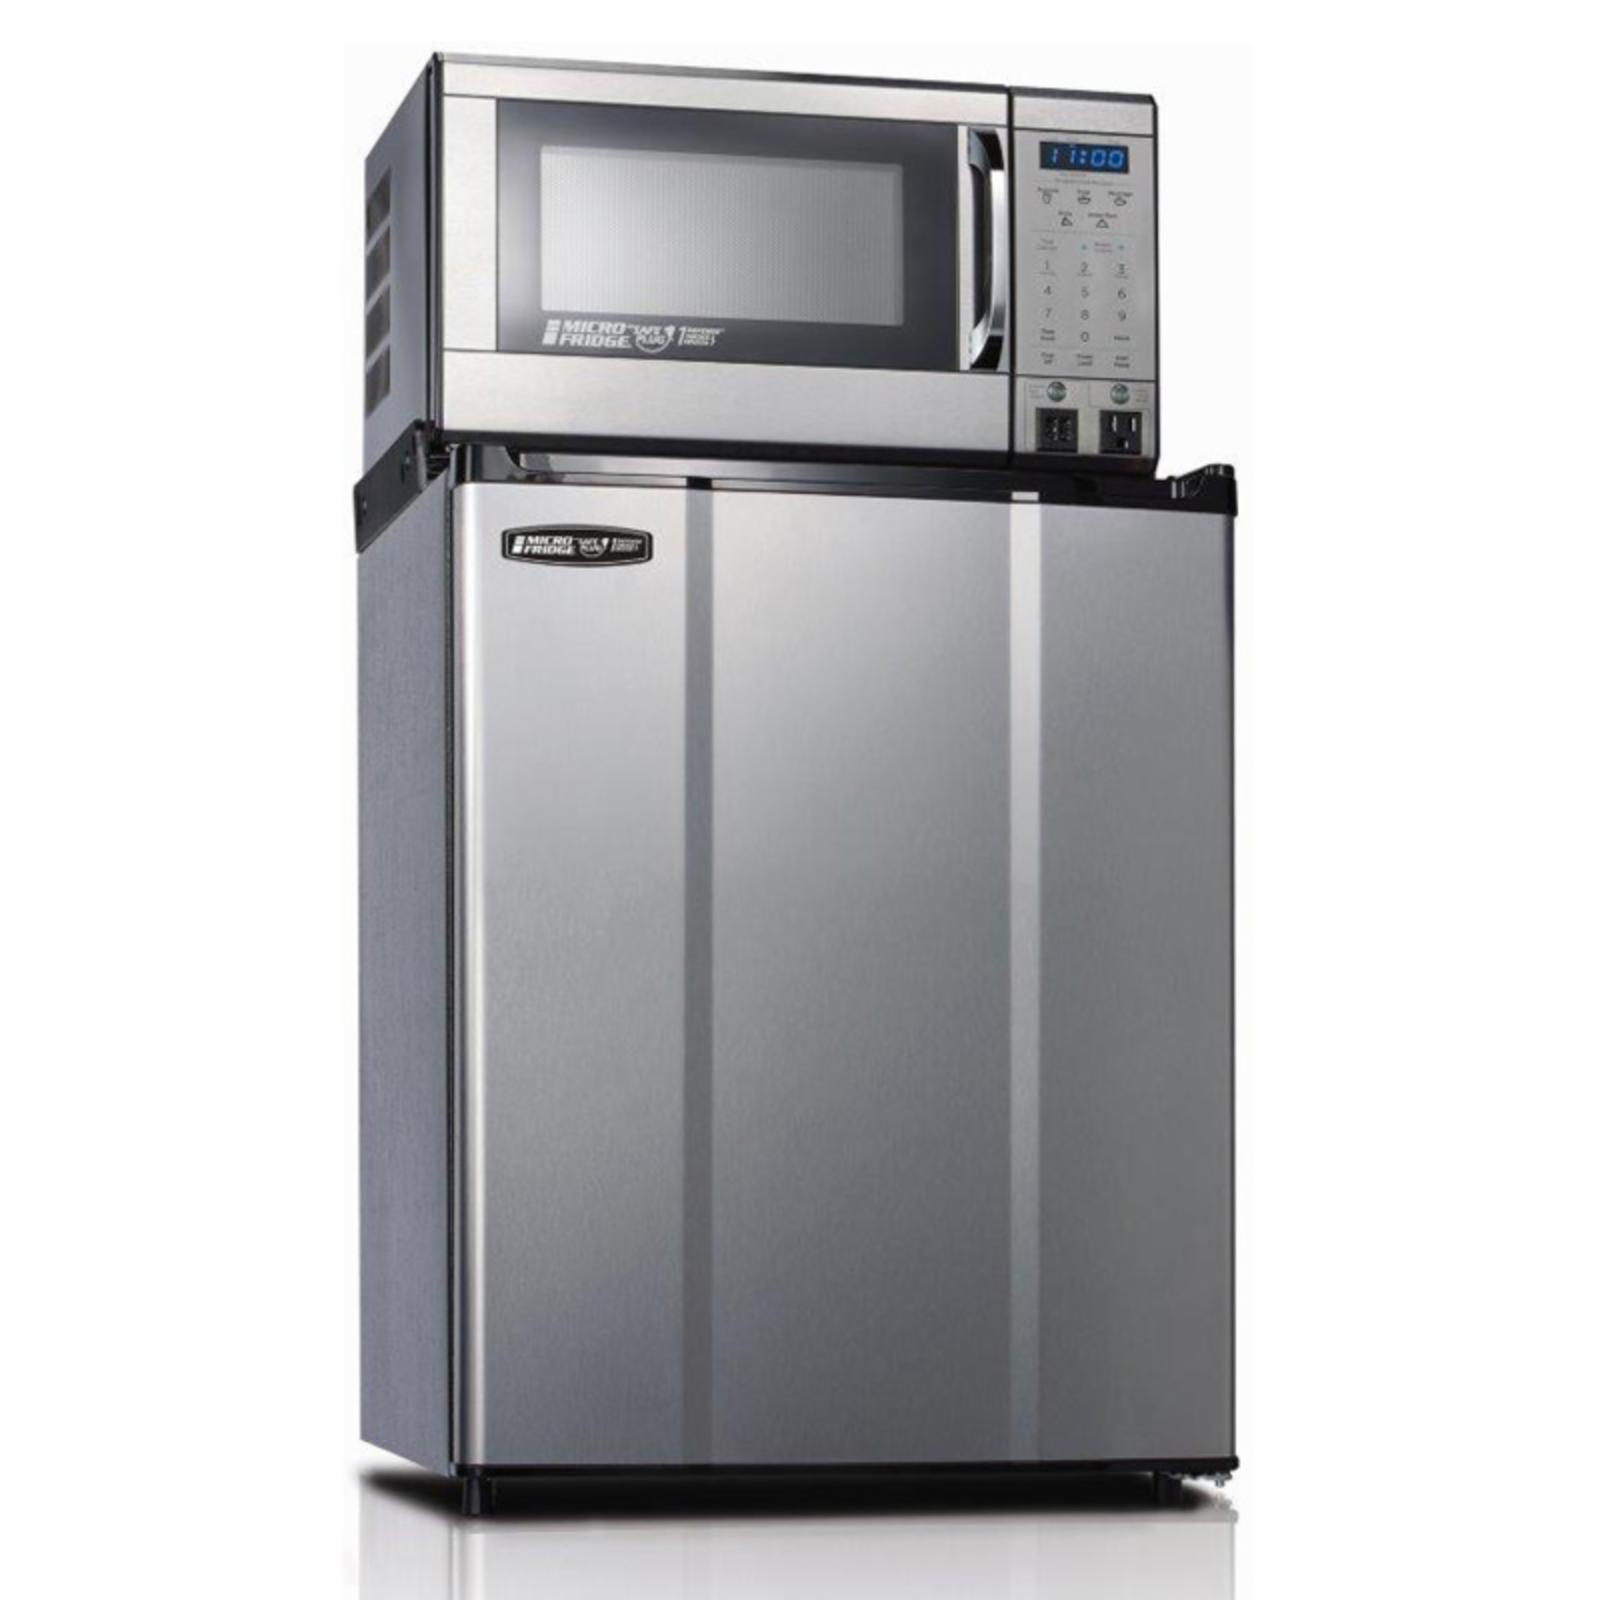 MicroFridge 2.3 cu. ft. Refrigerator with Microwave Oven